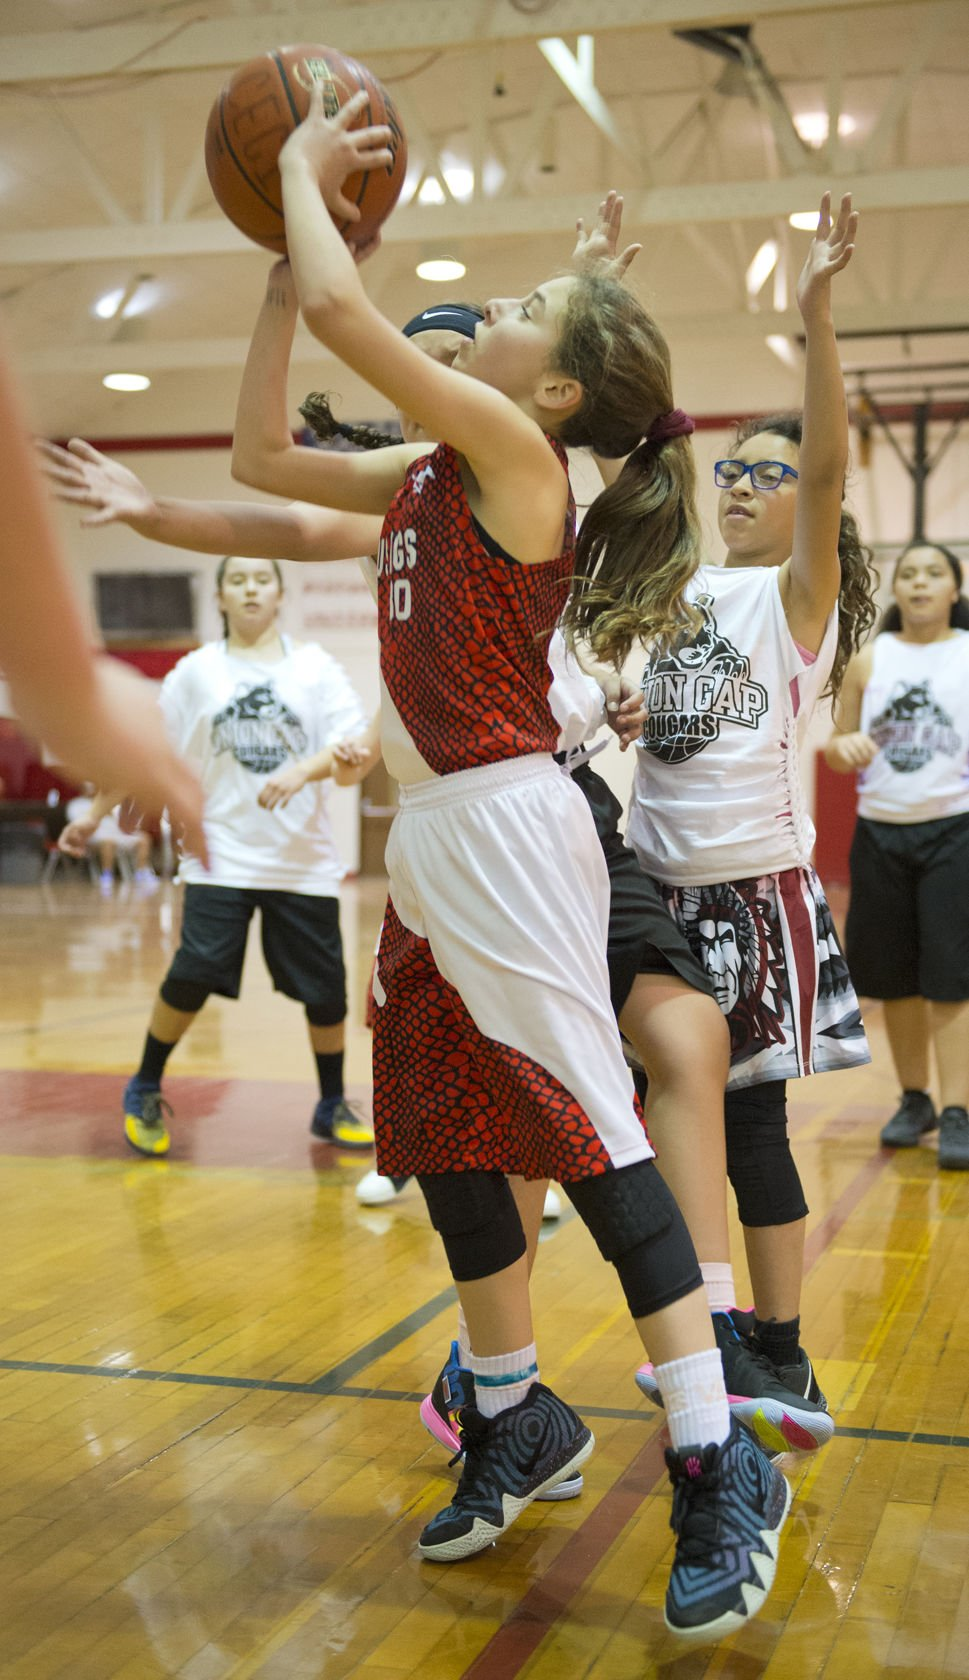 # TeamJazzy: Hoops 4 Hope inspires winning attitude